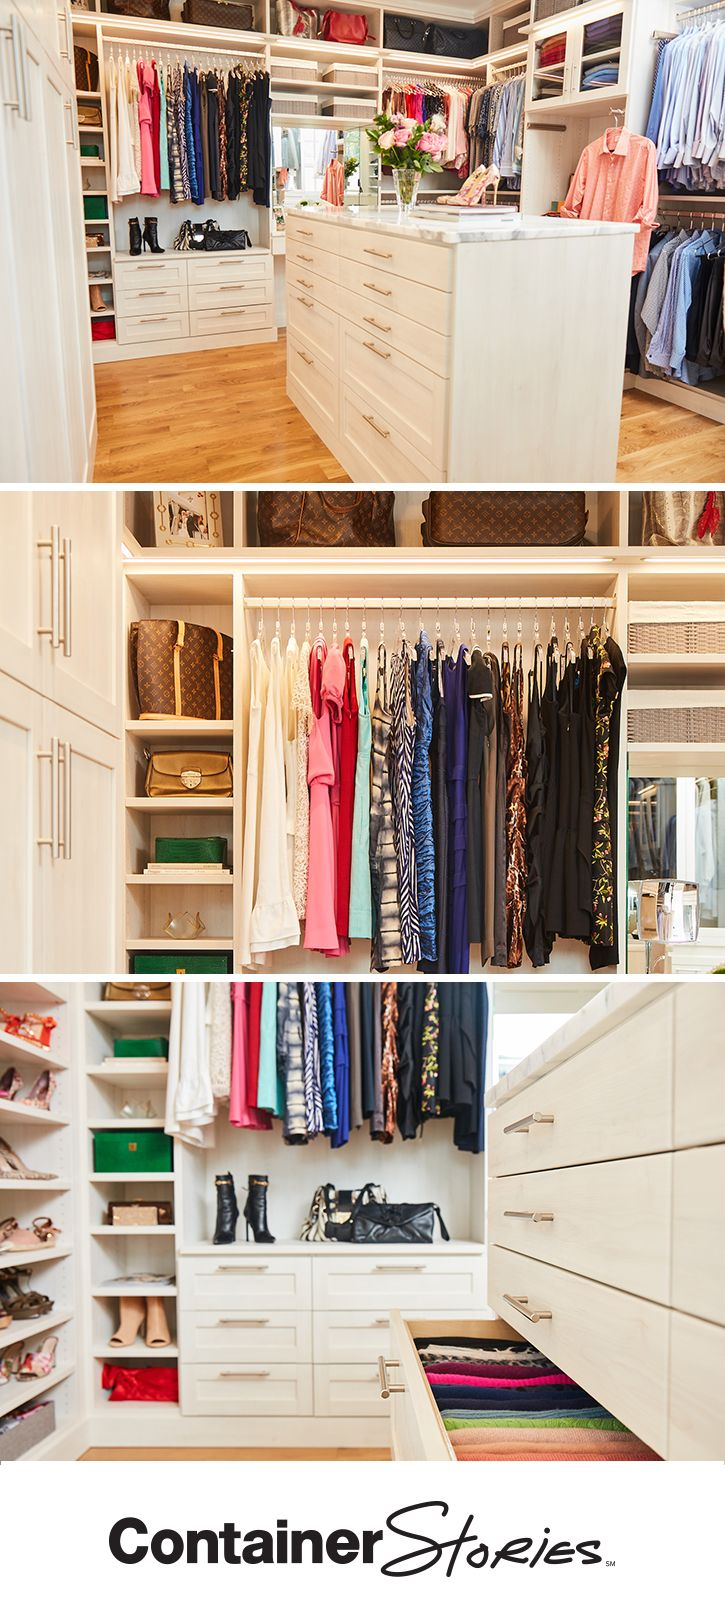 Container Store Closet System Amusing A Master Tcs Closet Designed And Styleda Master Organizer Design Decoration